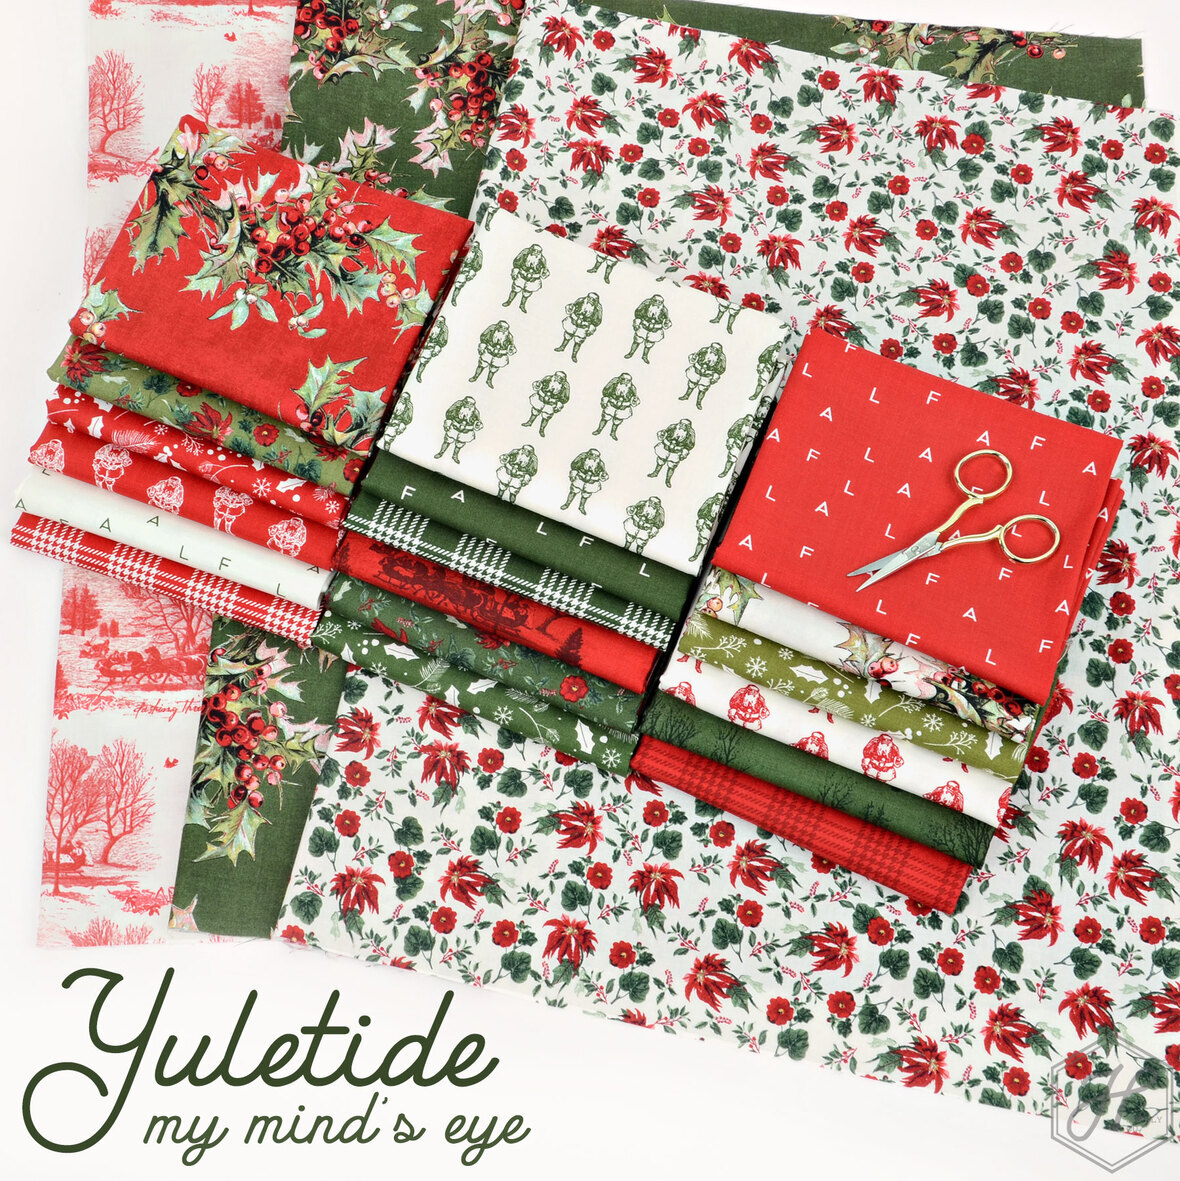 Holiday-Yuletide-Christmas-fabric-Riley-Blake-available-at-Hawthorne-Supply-co